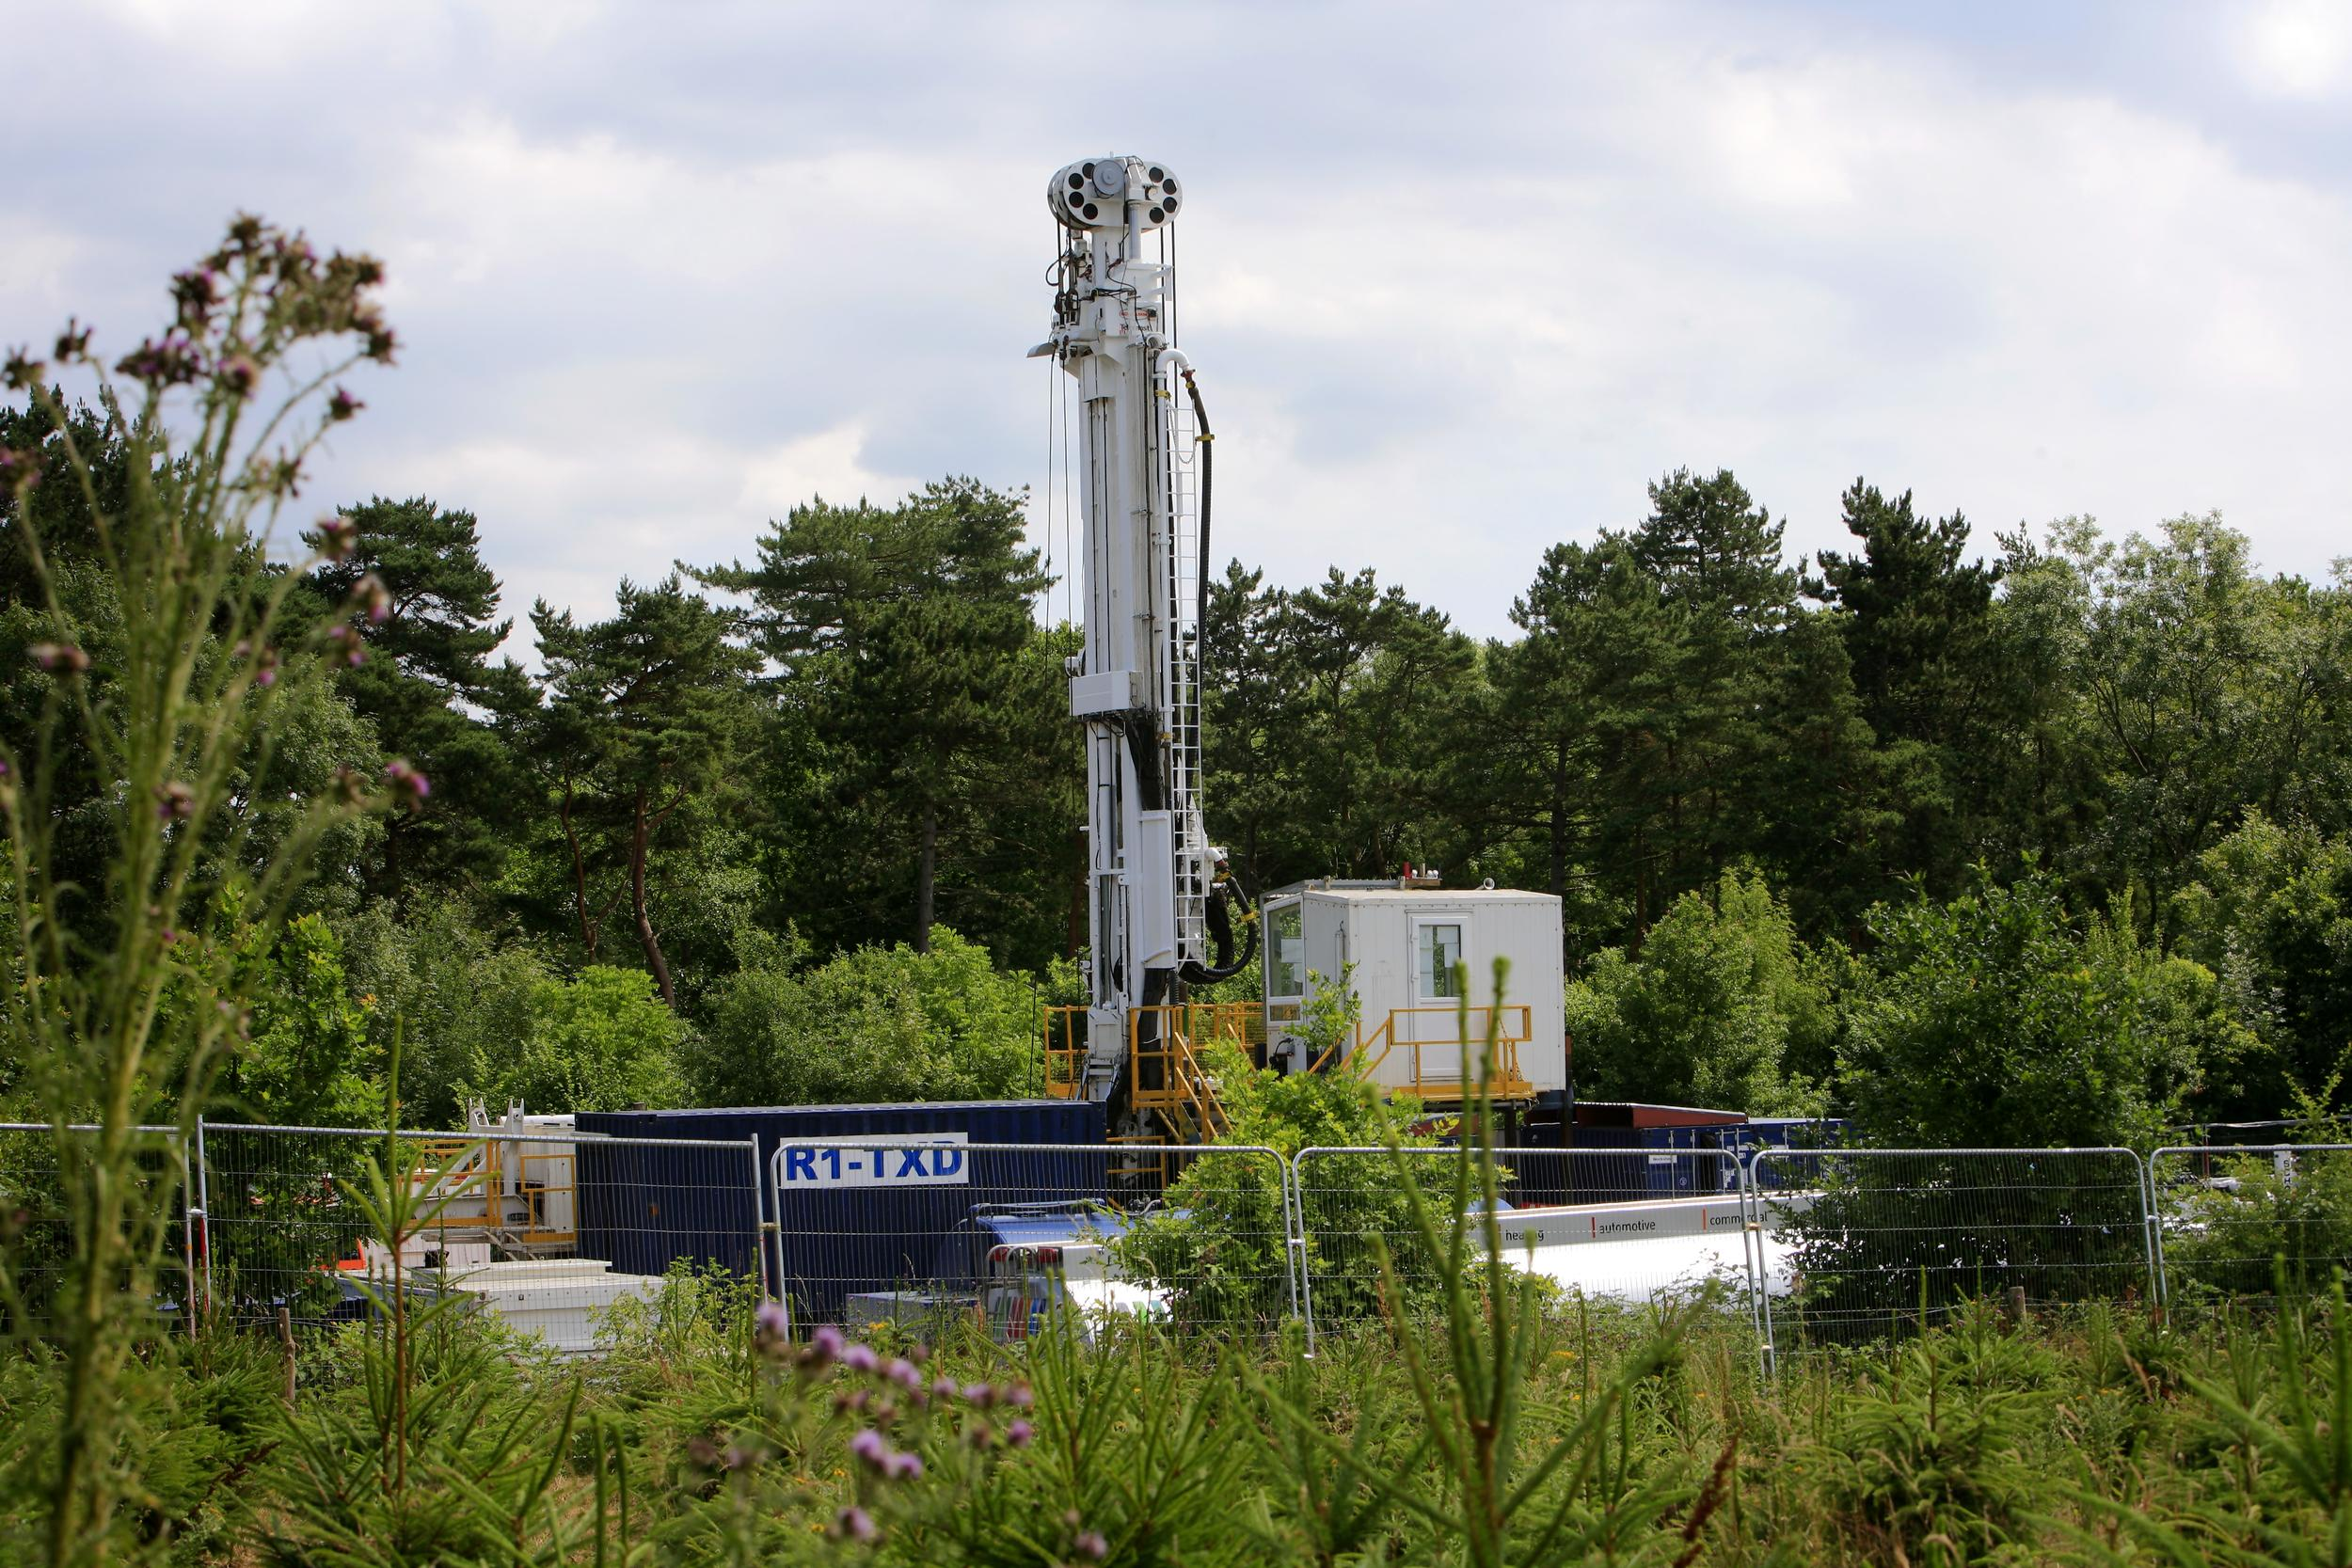 Engineering equipment at Cuadrilla's fracking site